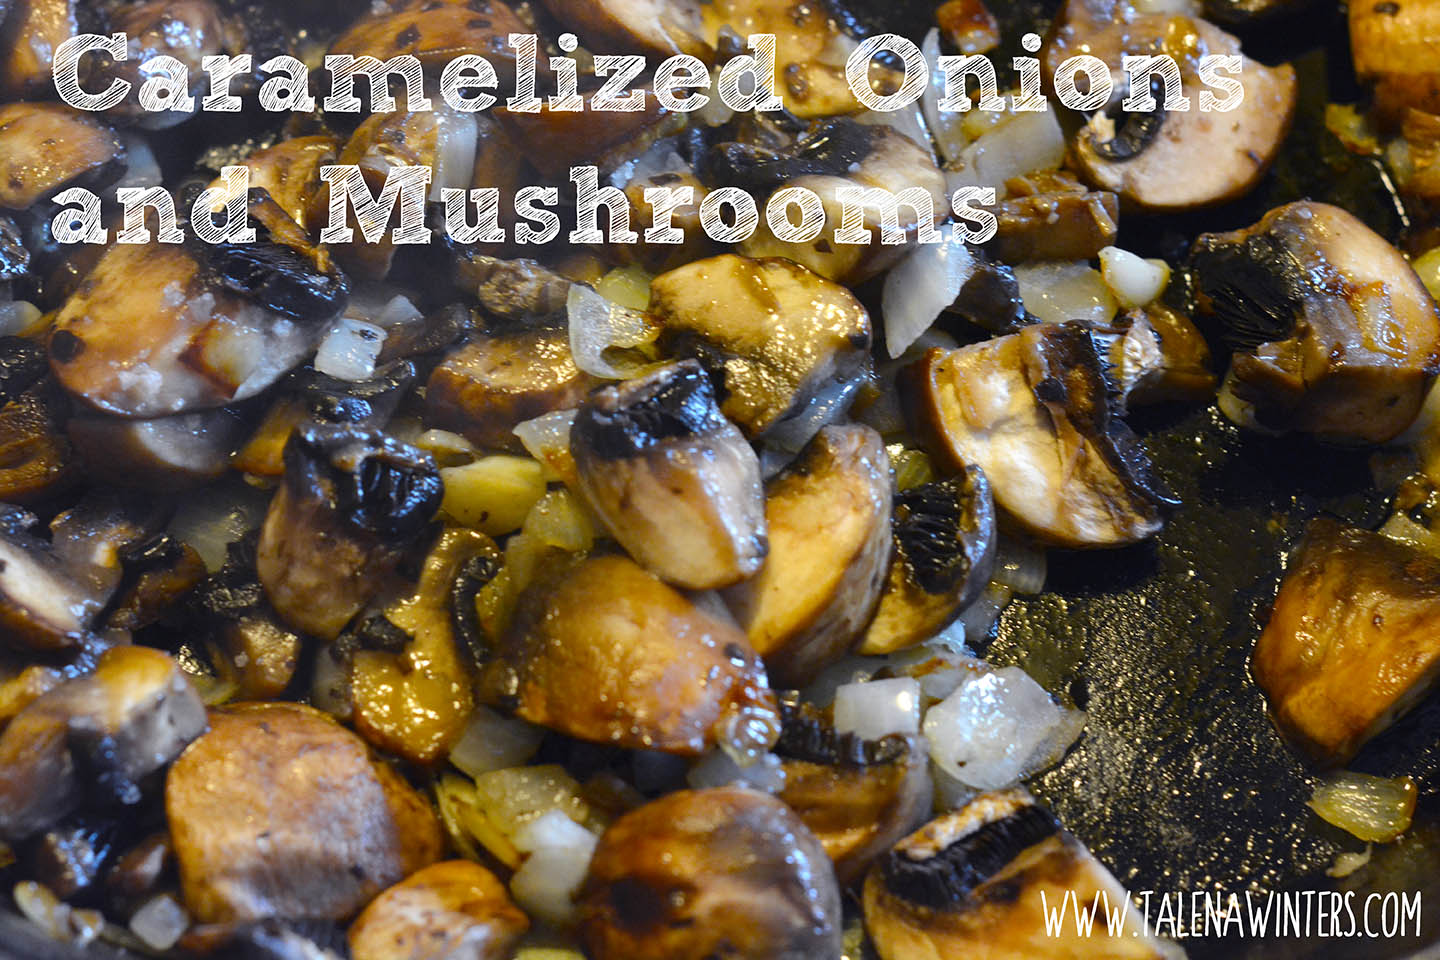 Caramelized onions and mushrooms. (I actually used Crimini mushrooms instead of Portabellas when photographing this recipe.)